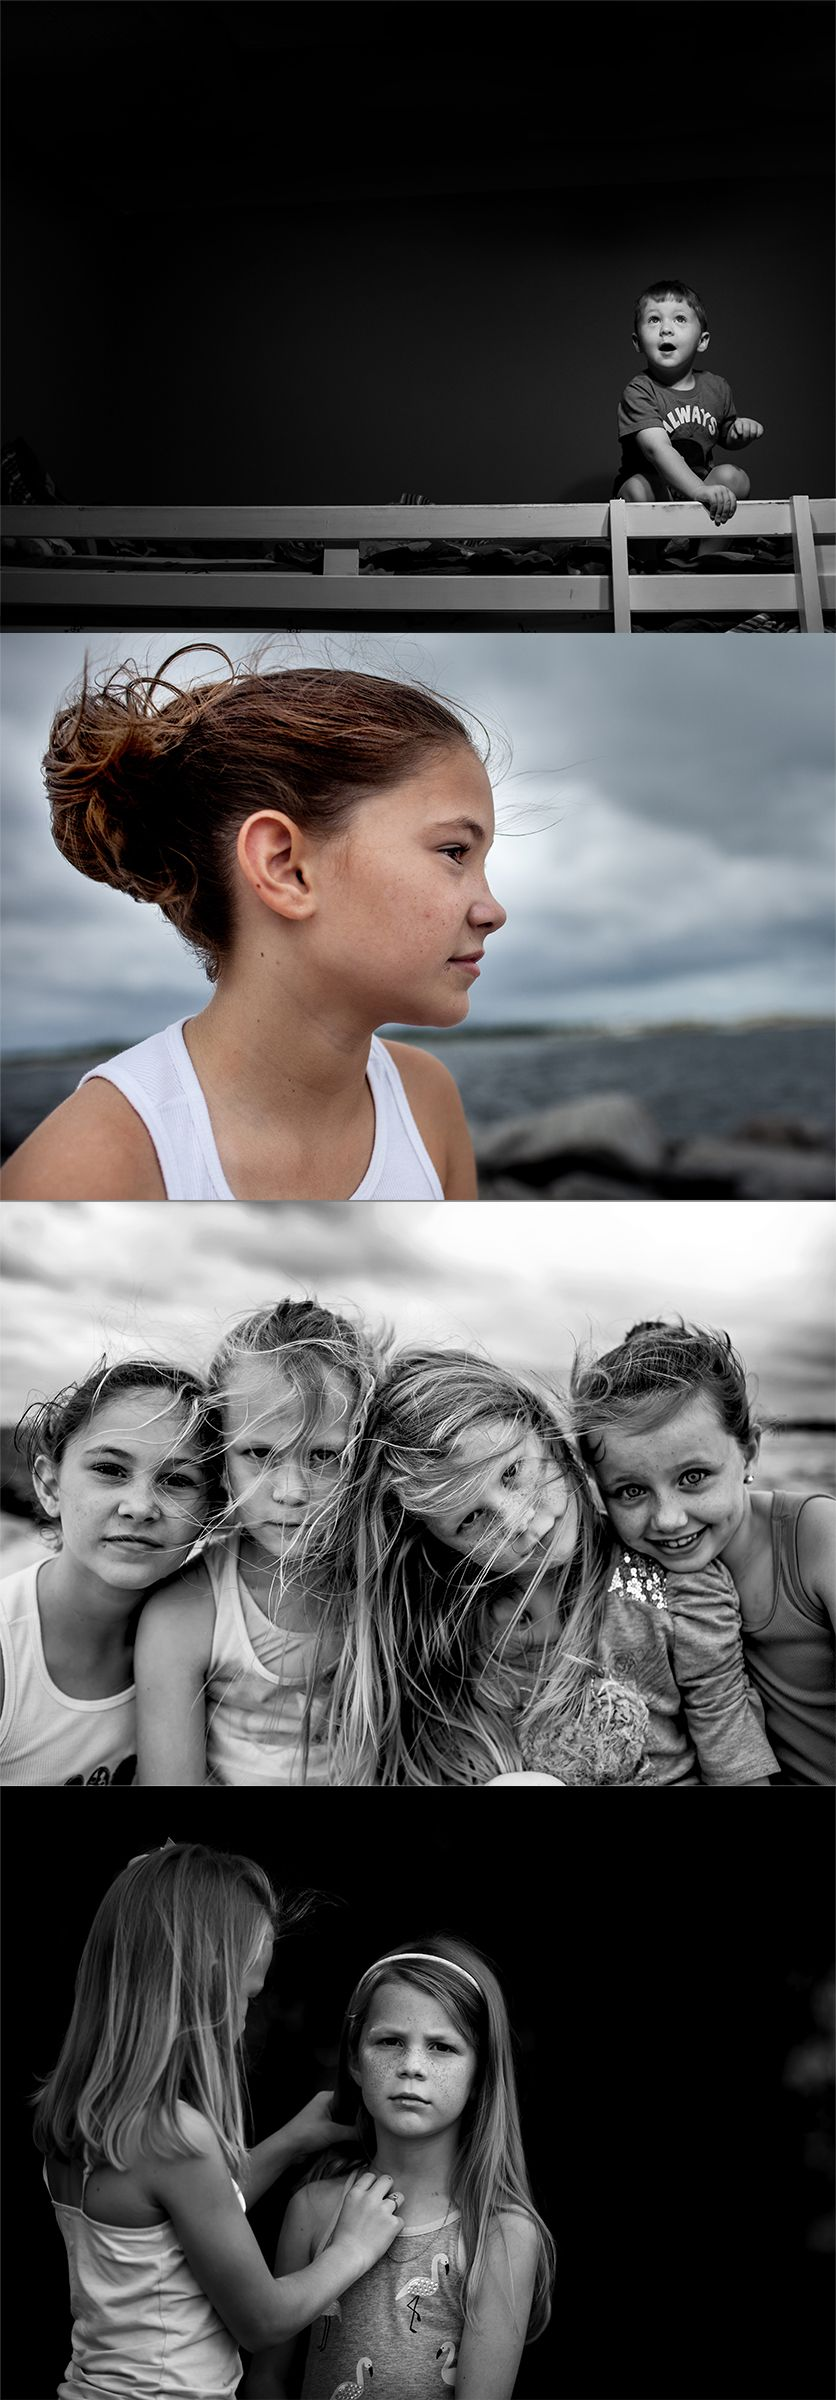 Portraits of your kids don't always have to be smiles at the camera. Look for a documentary family photographer to give your child's portrait emotion and meaning.